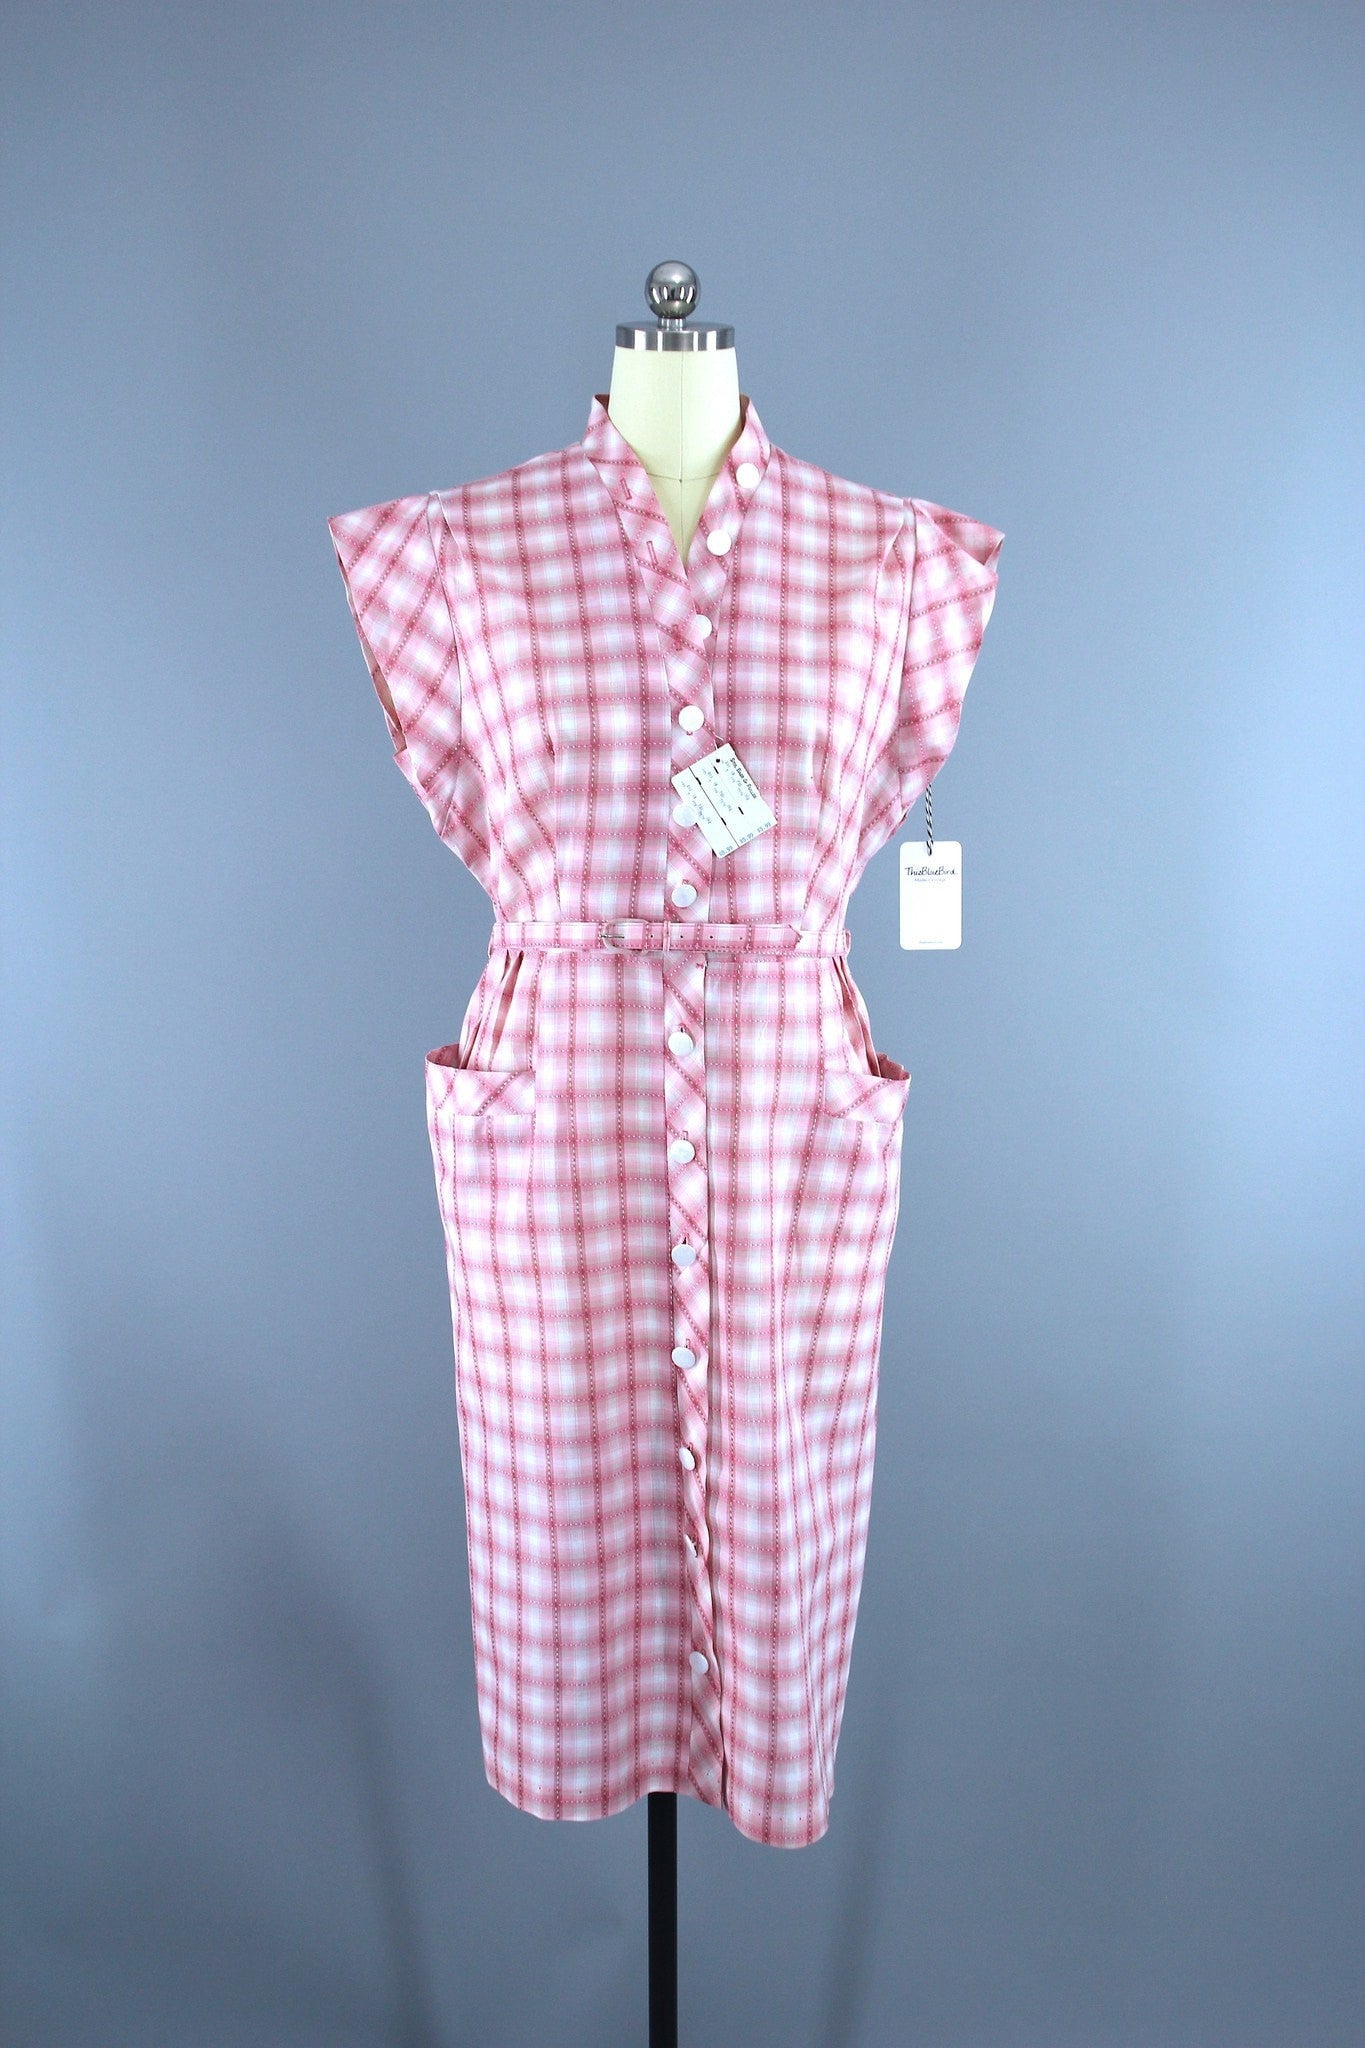 Vintage 1950s New Look Day Dress / Pink & White Checkerboard Plaid Cotton Dress ThisBlueBird